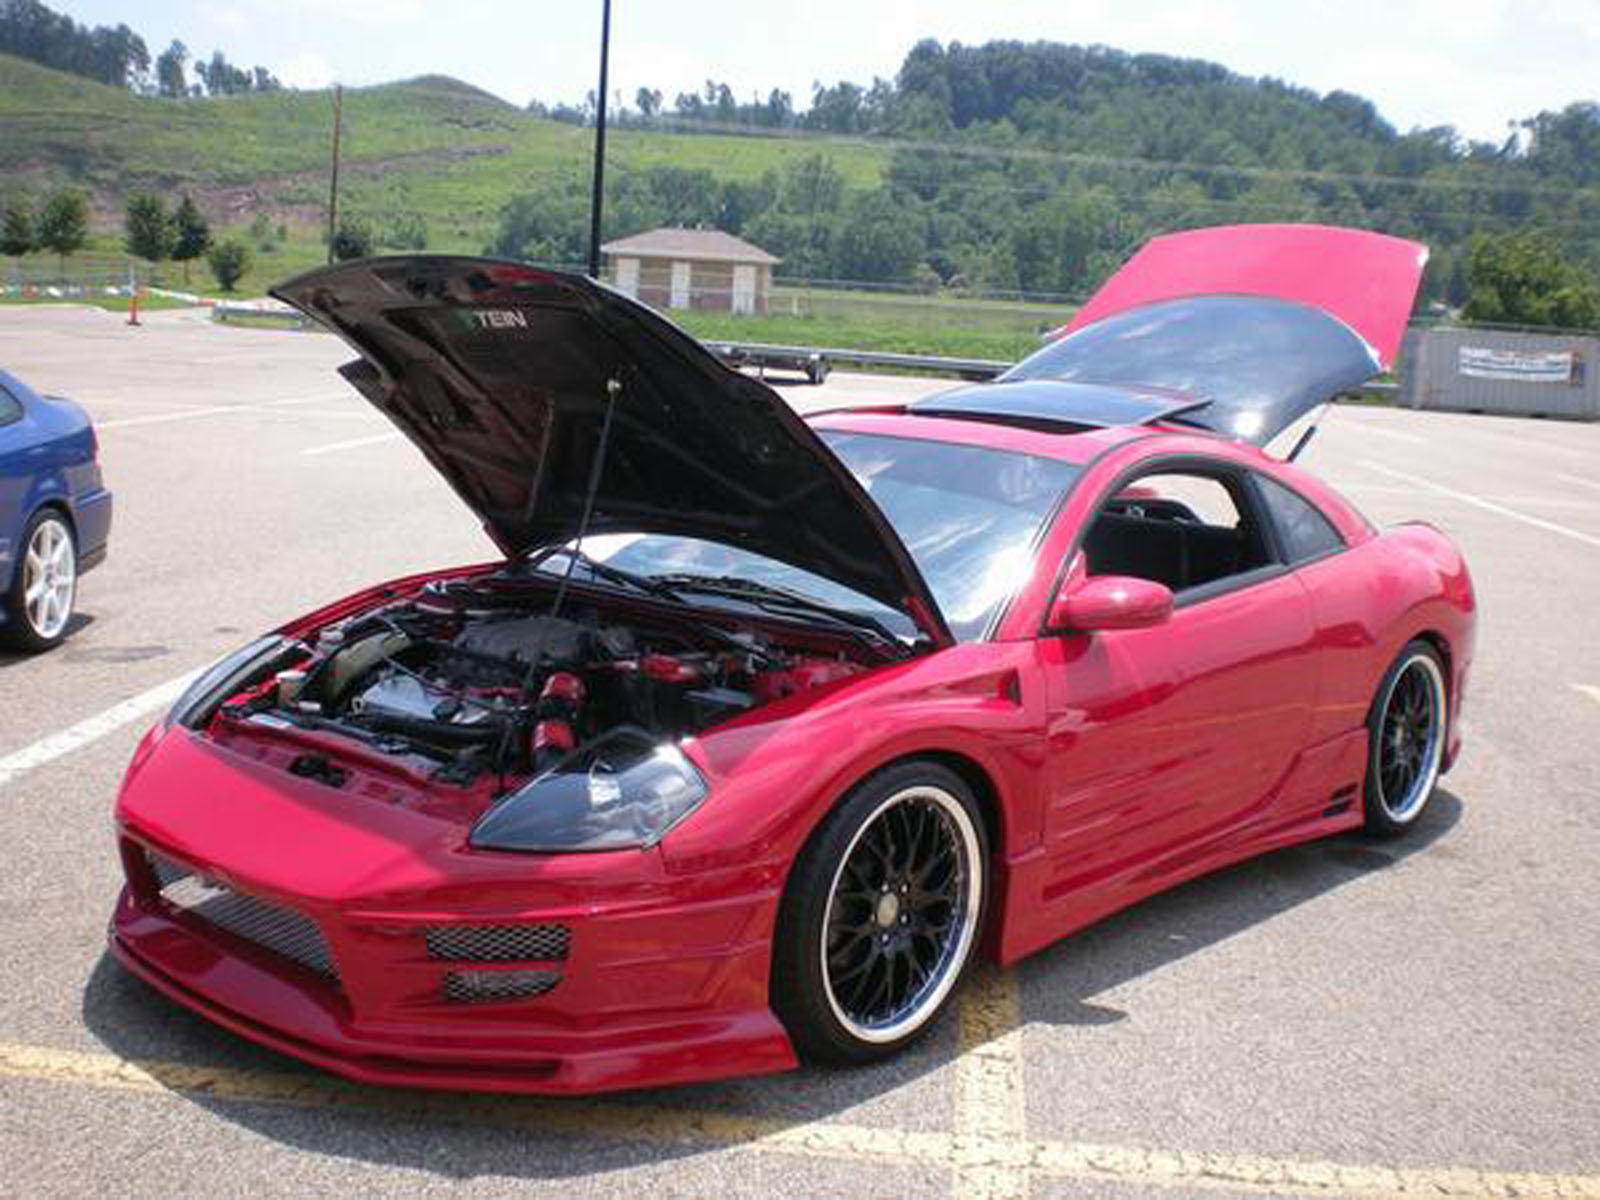 2000 mitsubishi eclipse gt for sale athens ohio. Black Bedroom Furniture Sets. Home Design Ideas